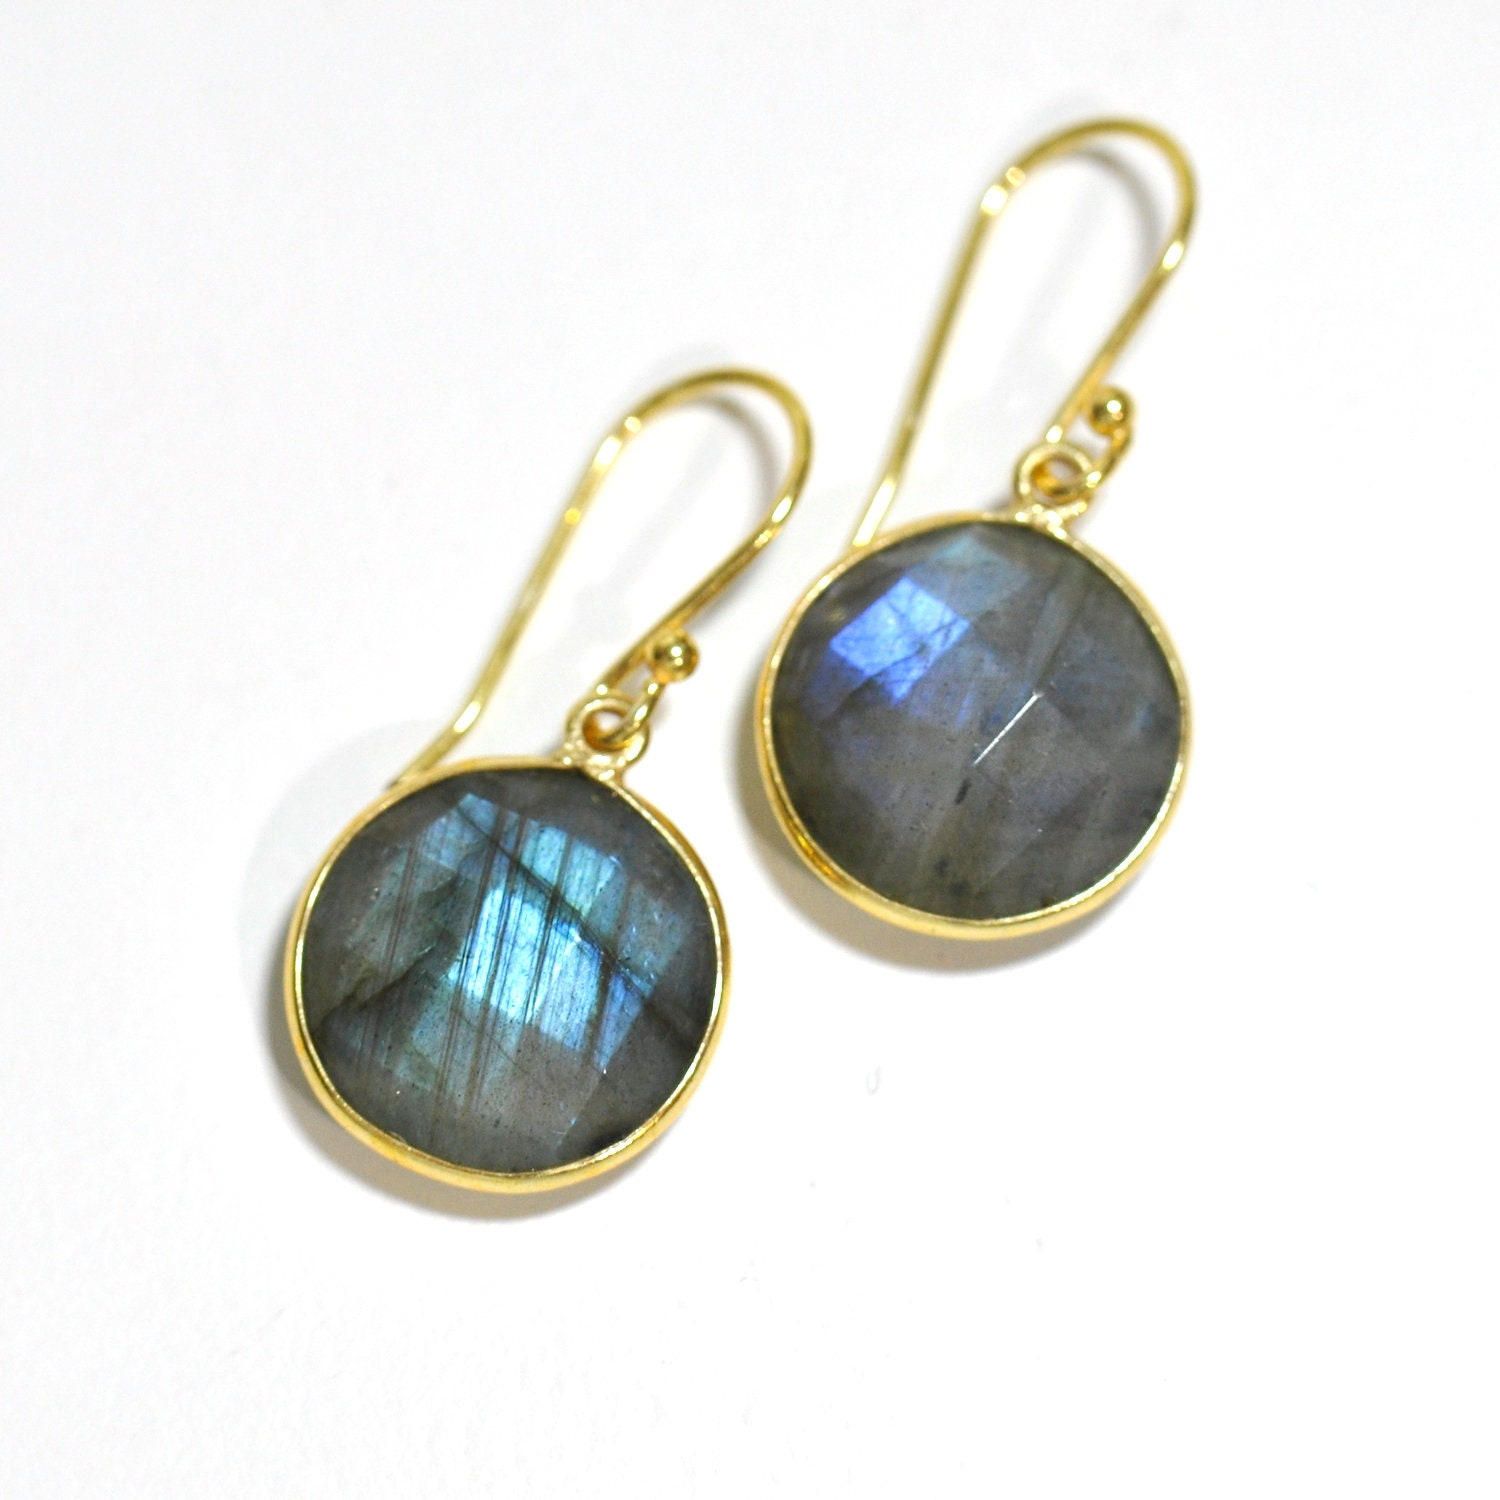 london ashiana jewellery earrings labradorite solange